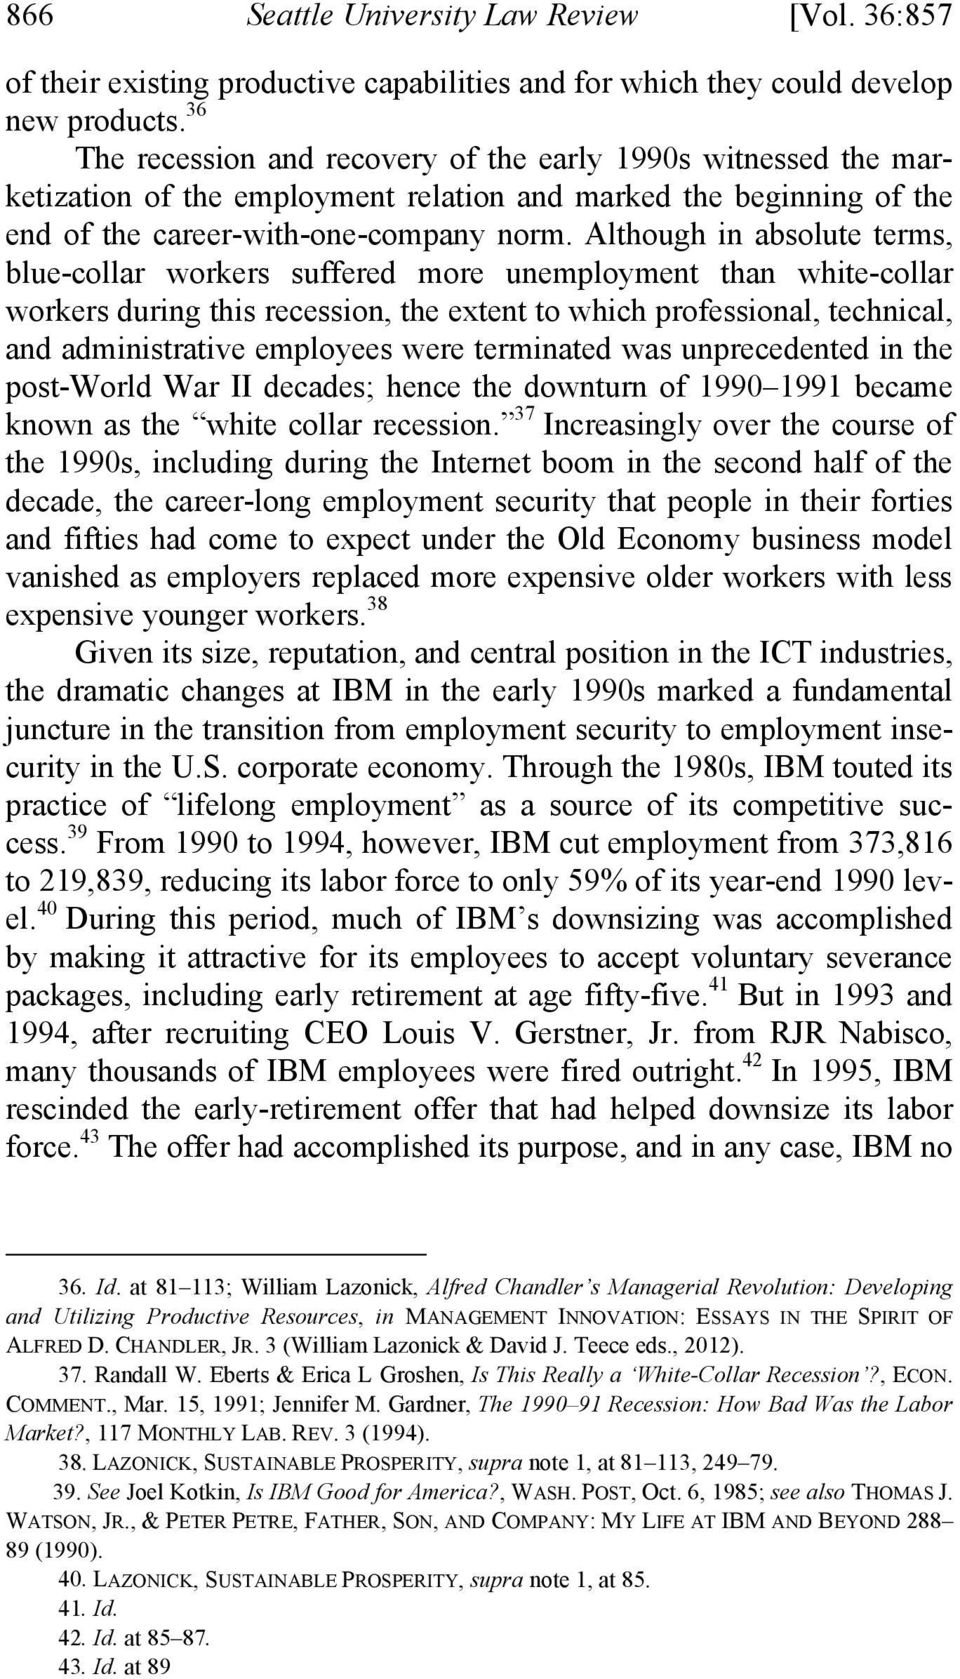 Although in absolute terms, blue-collar workers suffered more unemployment than white-collar workers during this recession, the extent to which professional, technical, and administrative employees